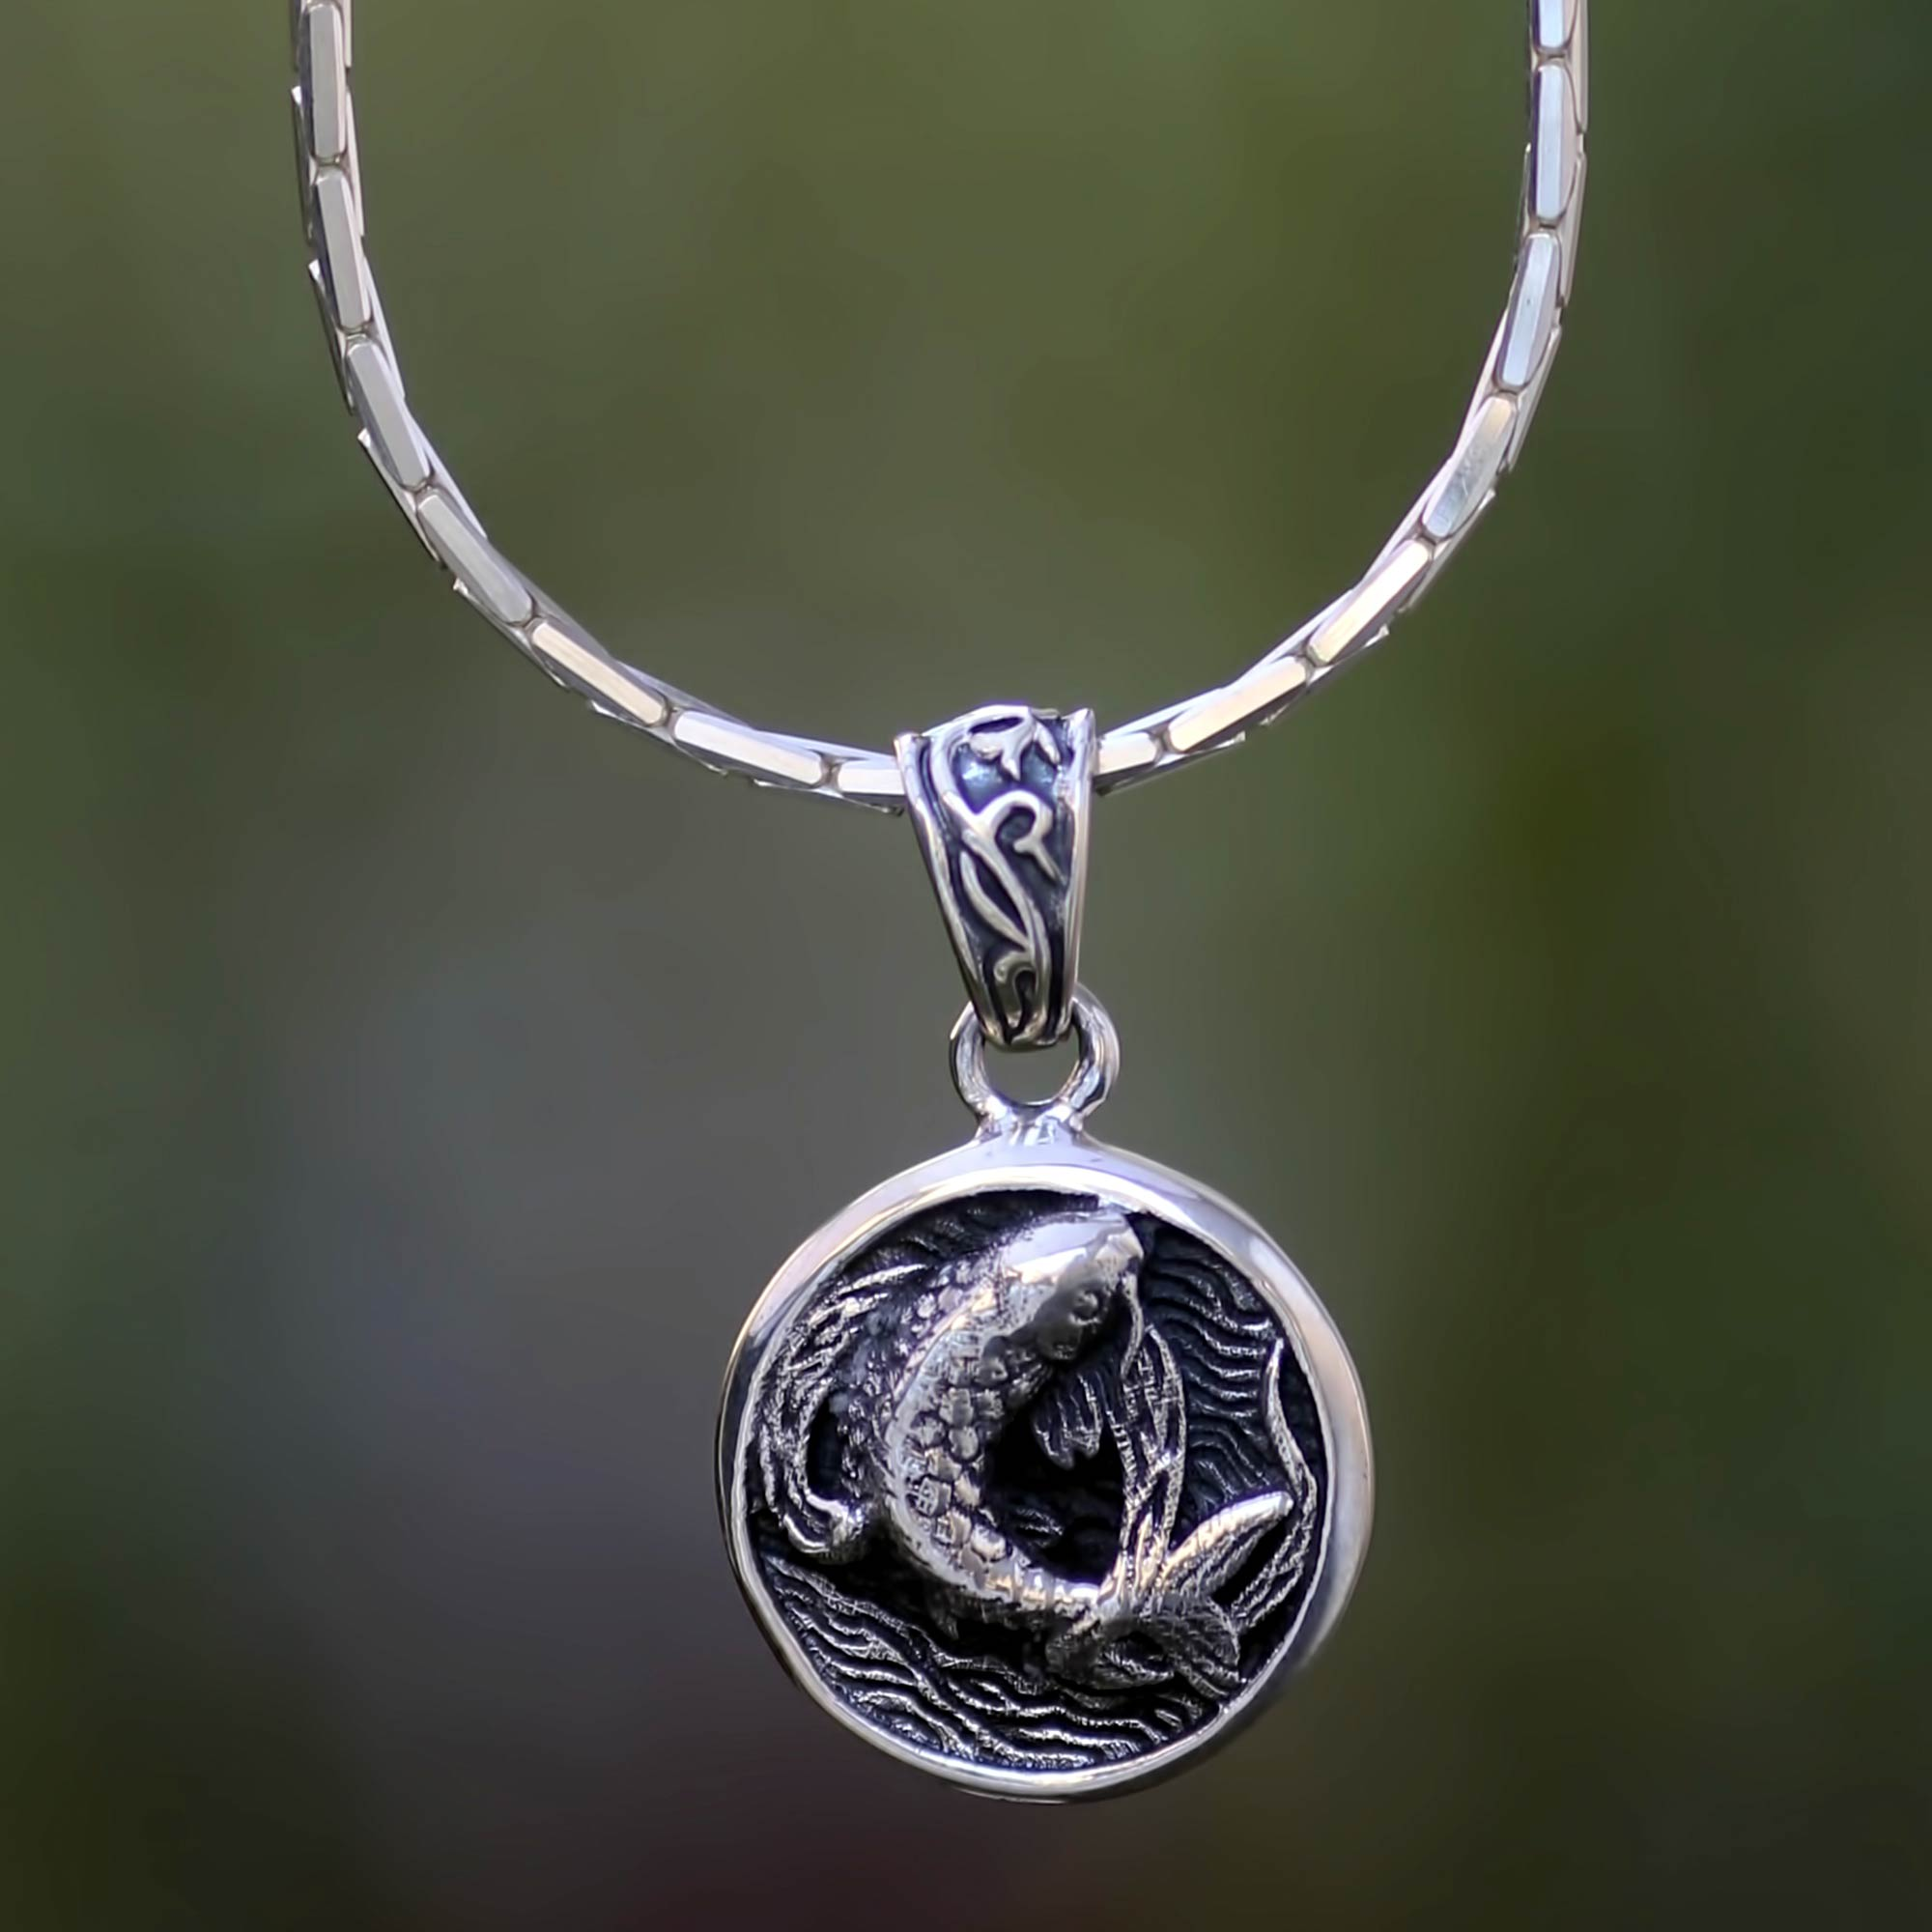 silver vaults product design abbey bath sterling moments and kellie black necklace pendant